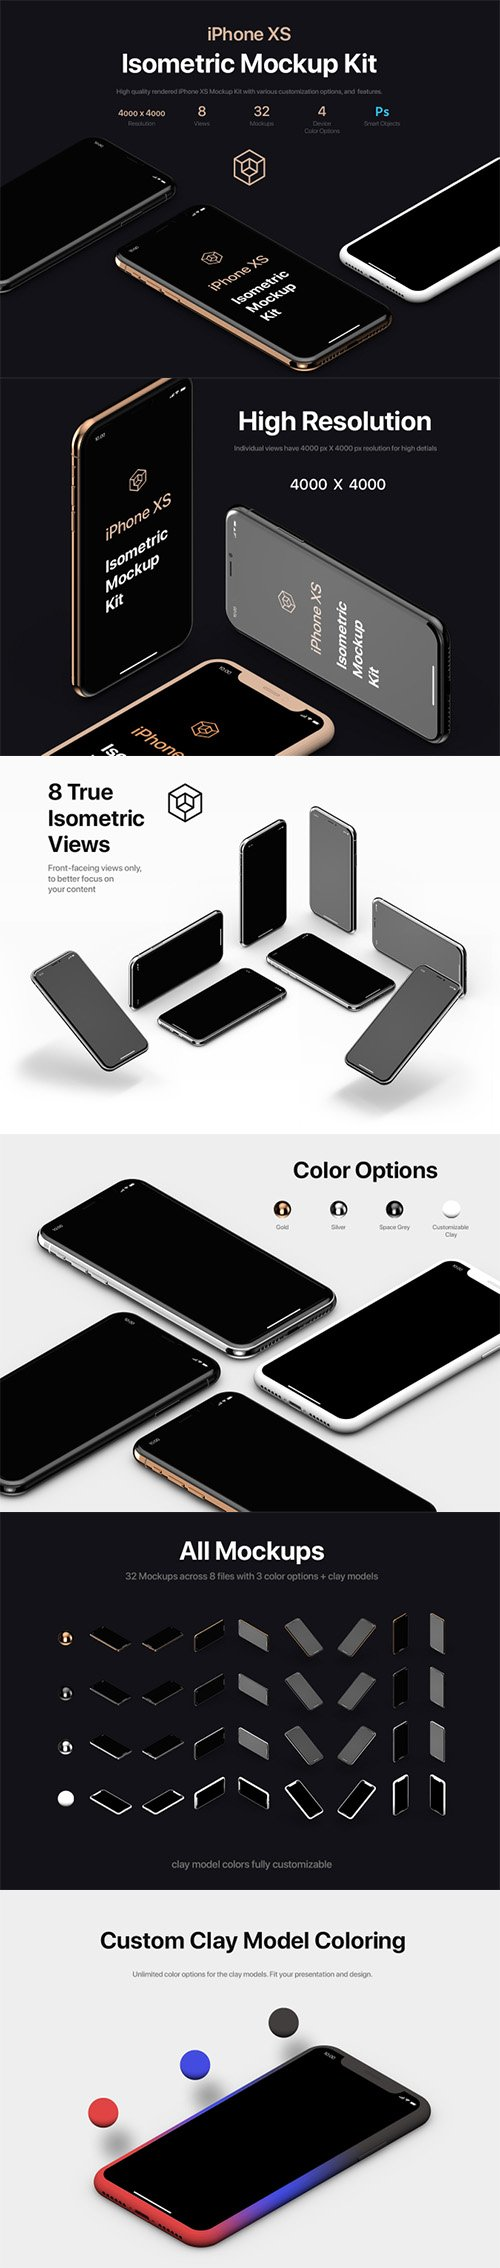 iPhone XS Isometric Mockups